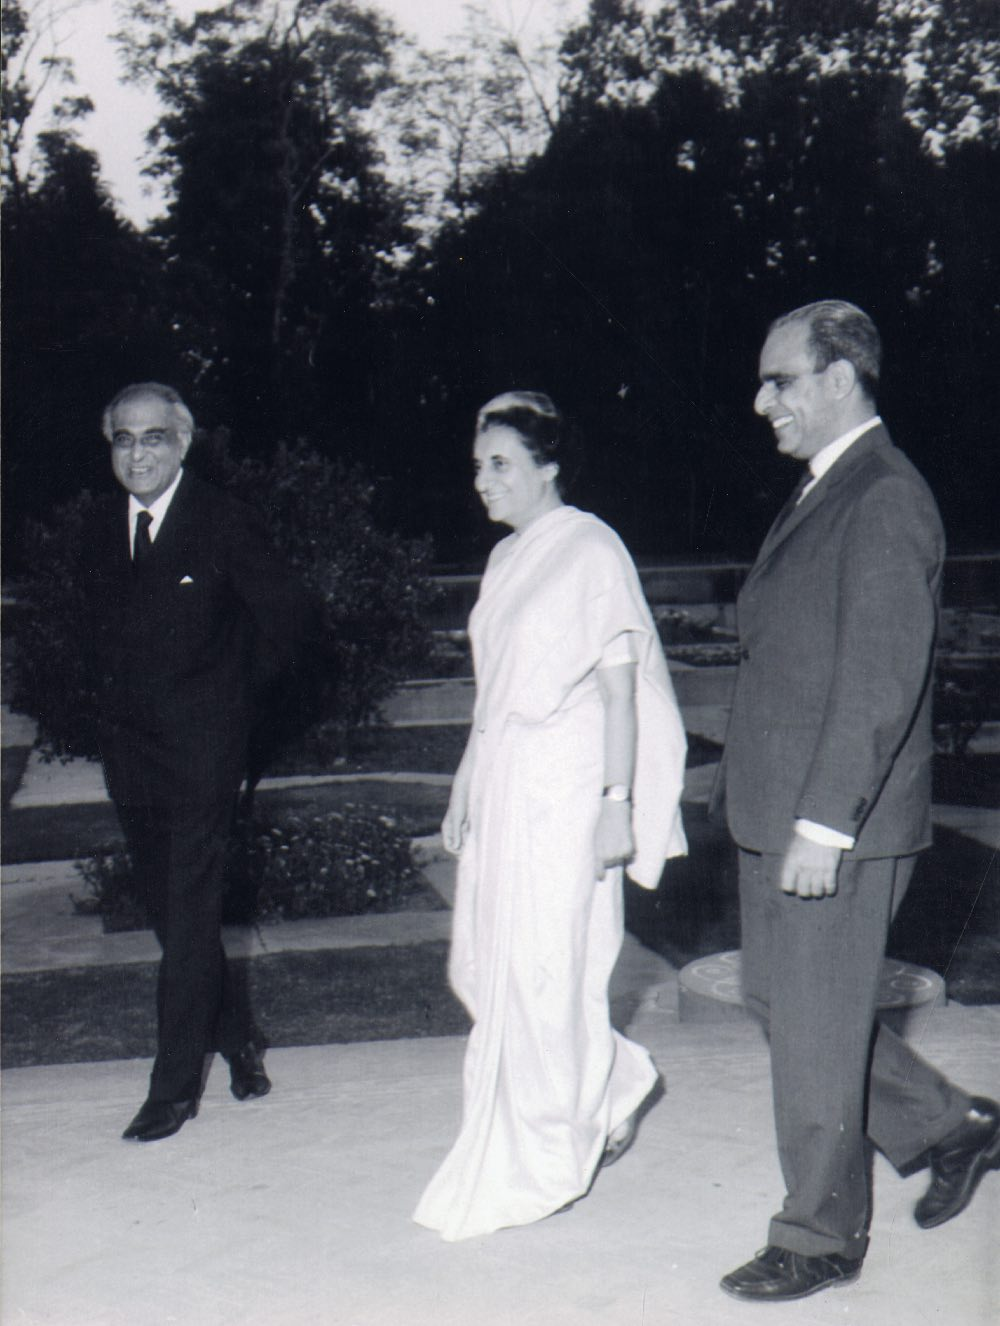 PN Haksar (left) and PN Dhar (right) at Haksar farewell hosted by Indira Gandhi, January 1973.